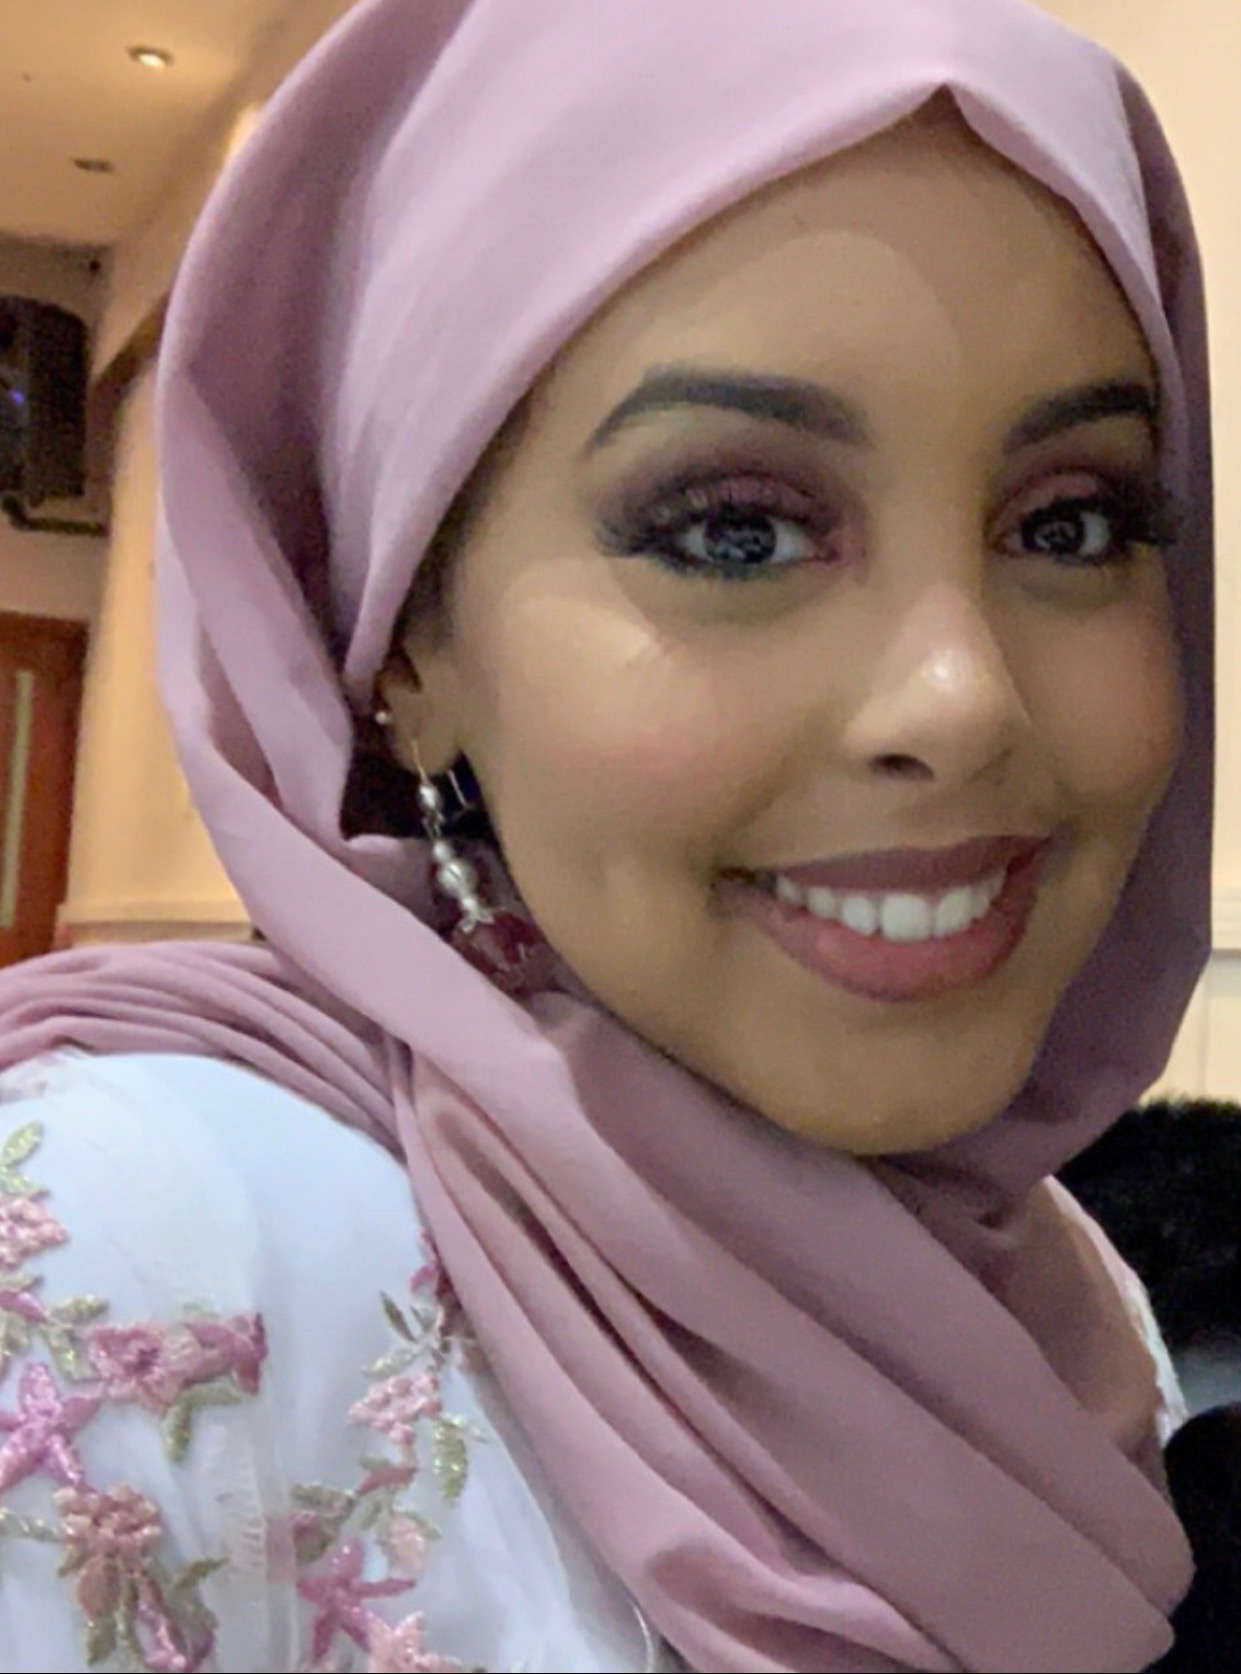 - Ramla Anshur is a final year biomedical student, interested in starting a career in Technology consulting and Health Tech. You can keep up with her and her adventures on her twitter page where she shares useful career resources and events @careerramla